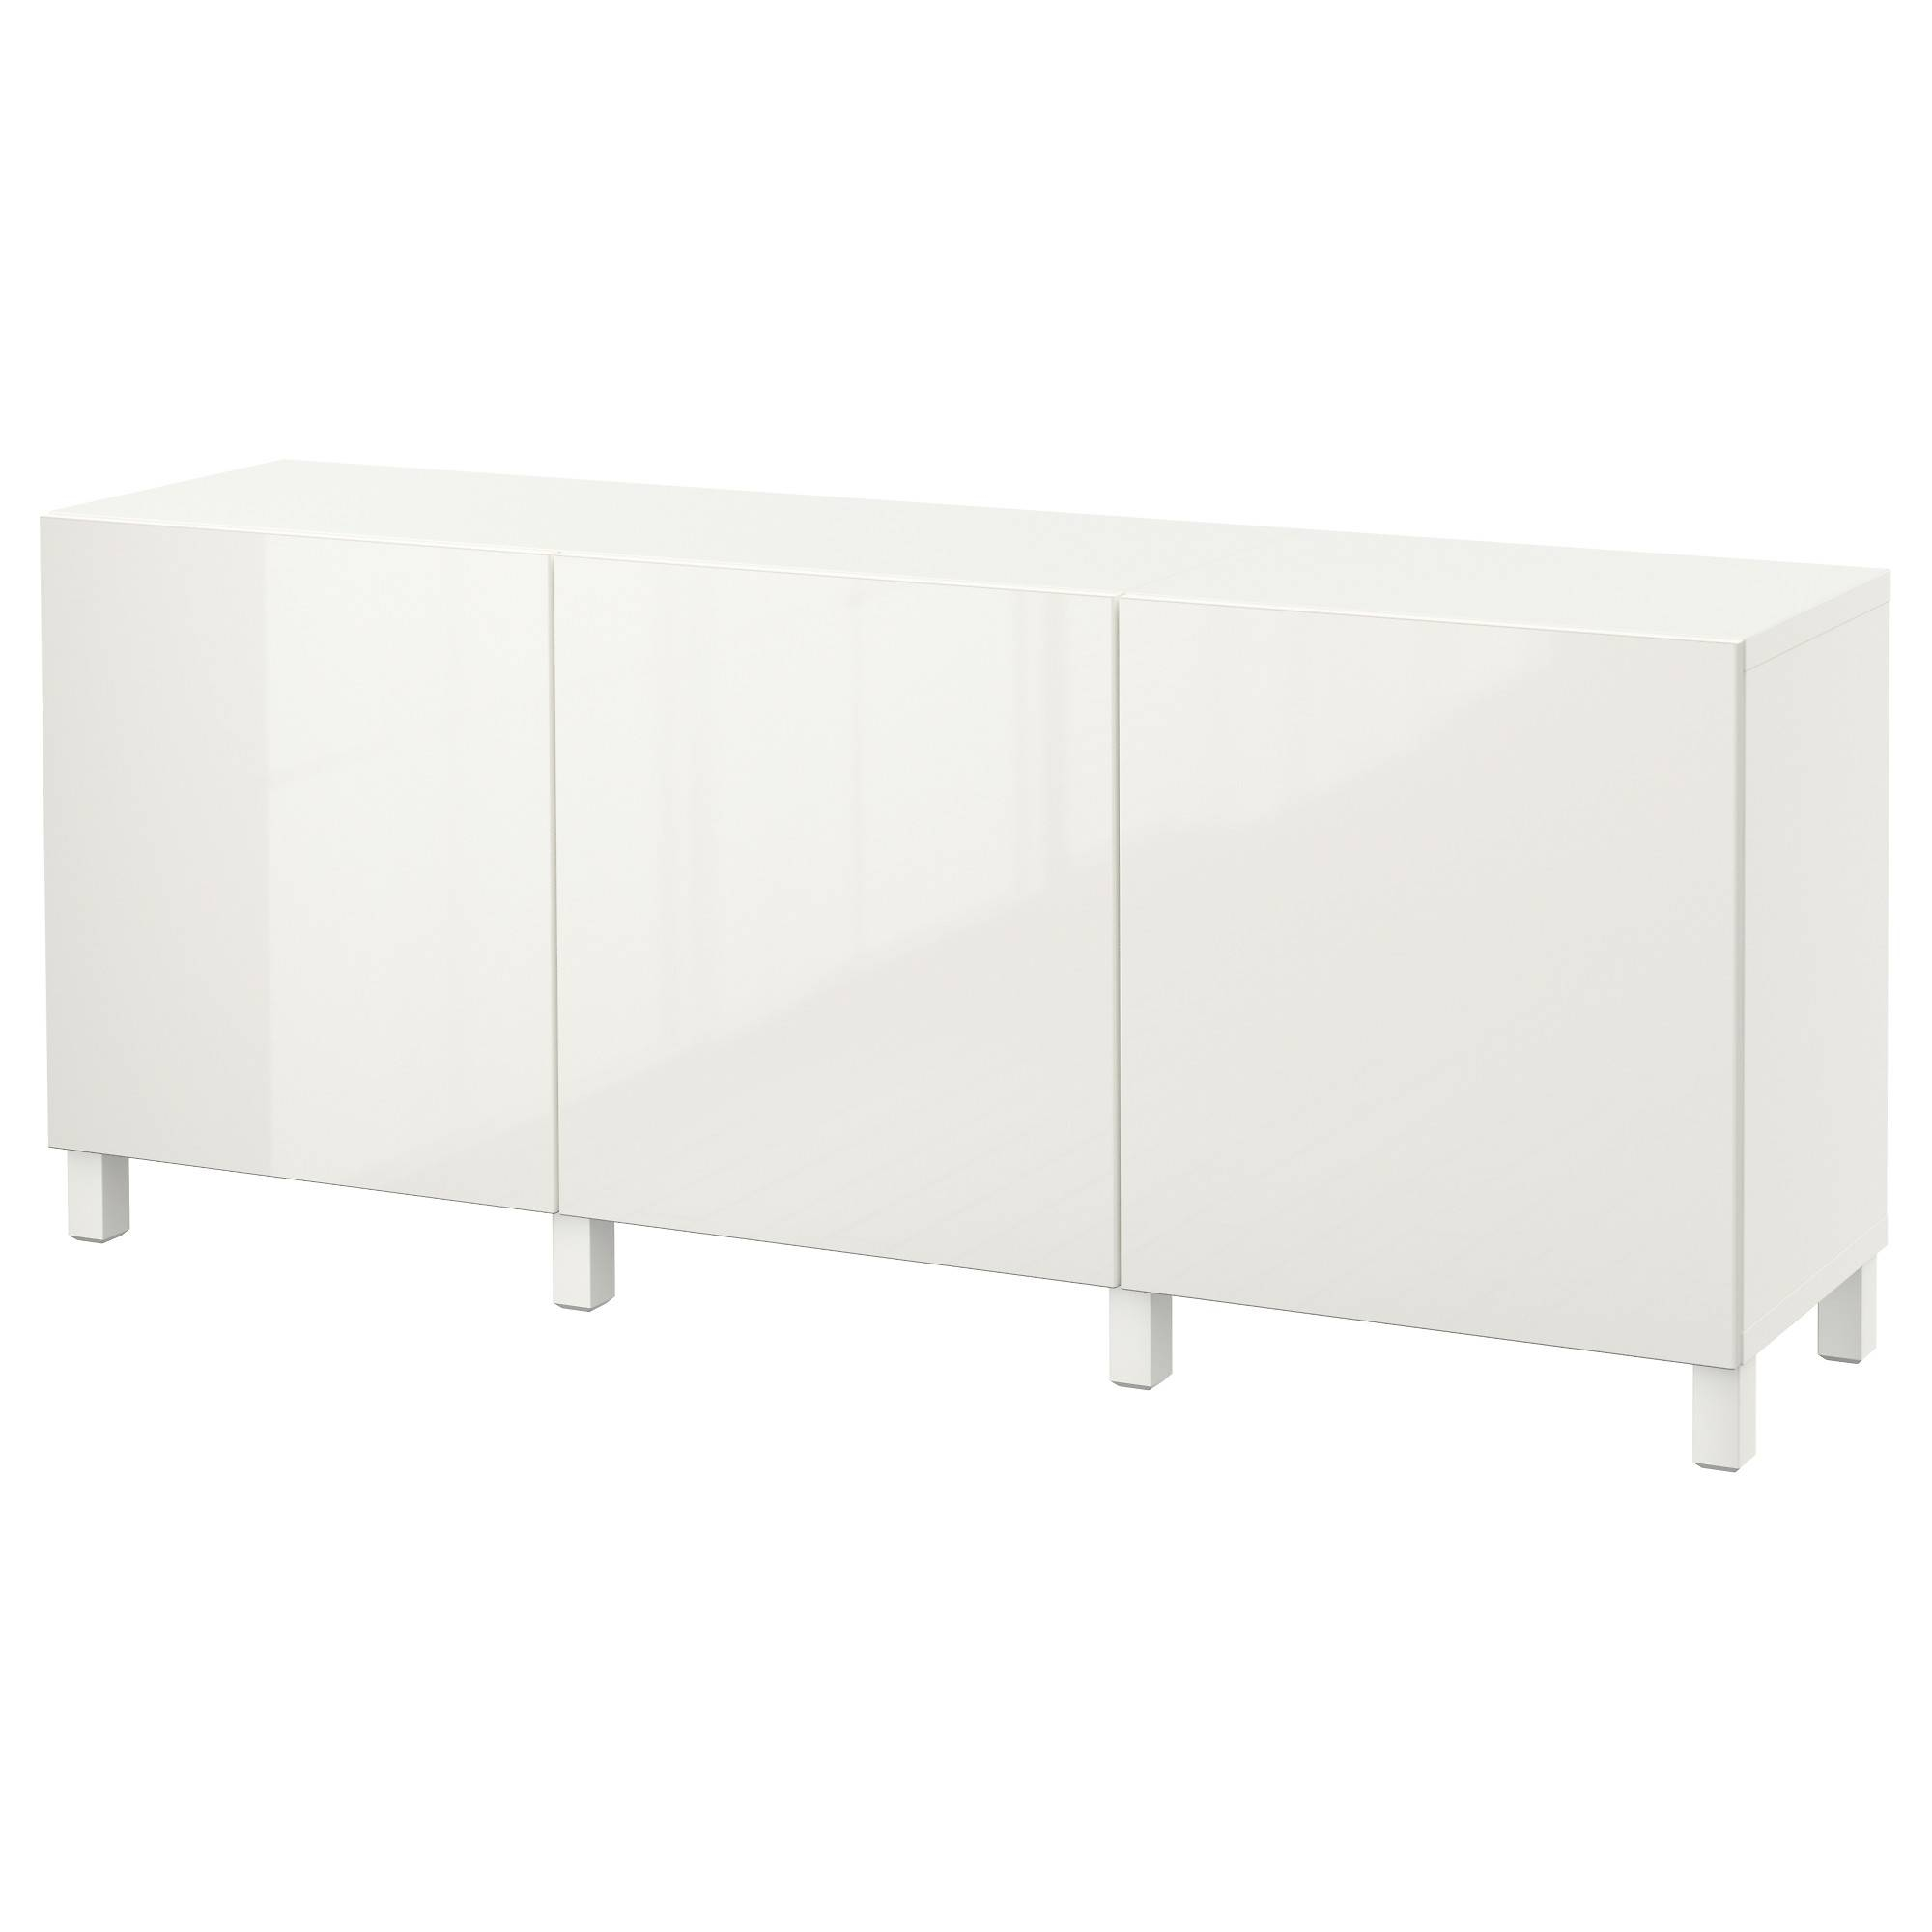 Bestå Storage Combination With Doors - White/selsviken High-Gloss intended for White Sideboards (Image 4 of 30)